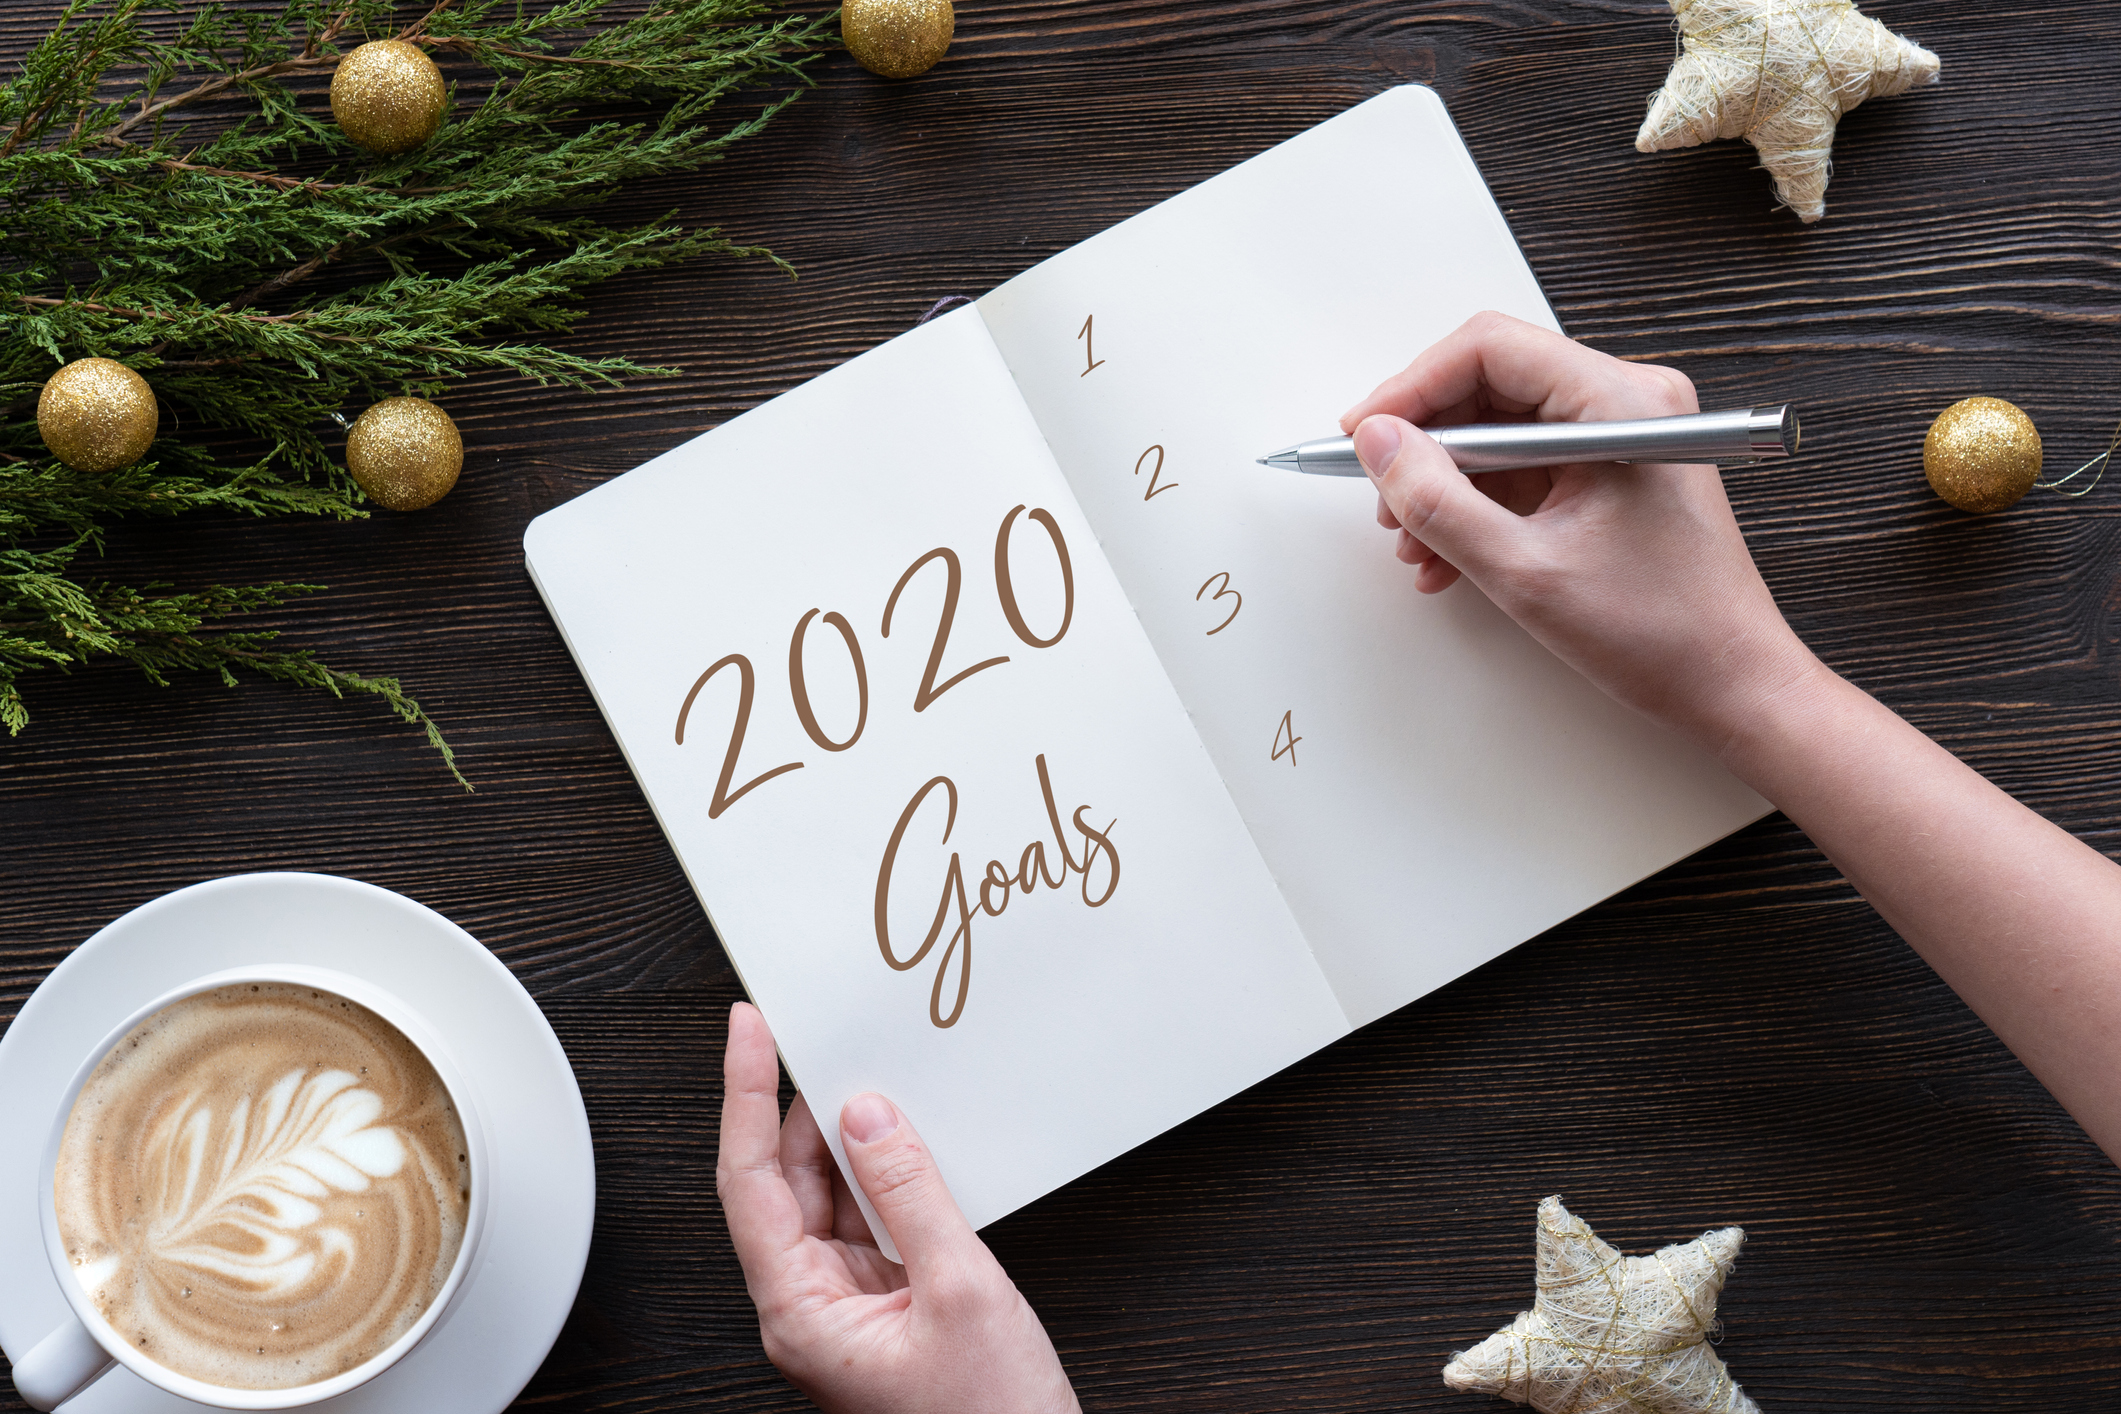 Female hands write new year goals in notebook on brown wooden table, flat lay